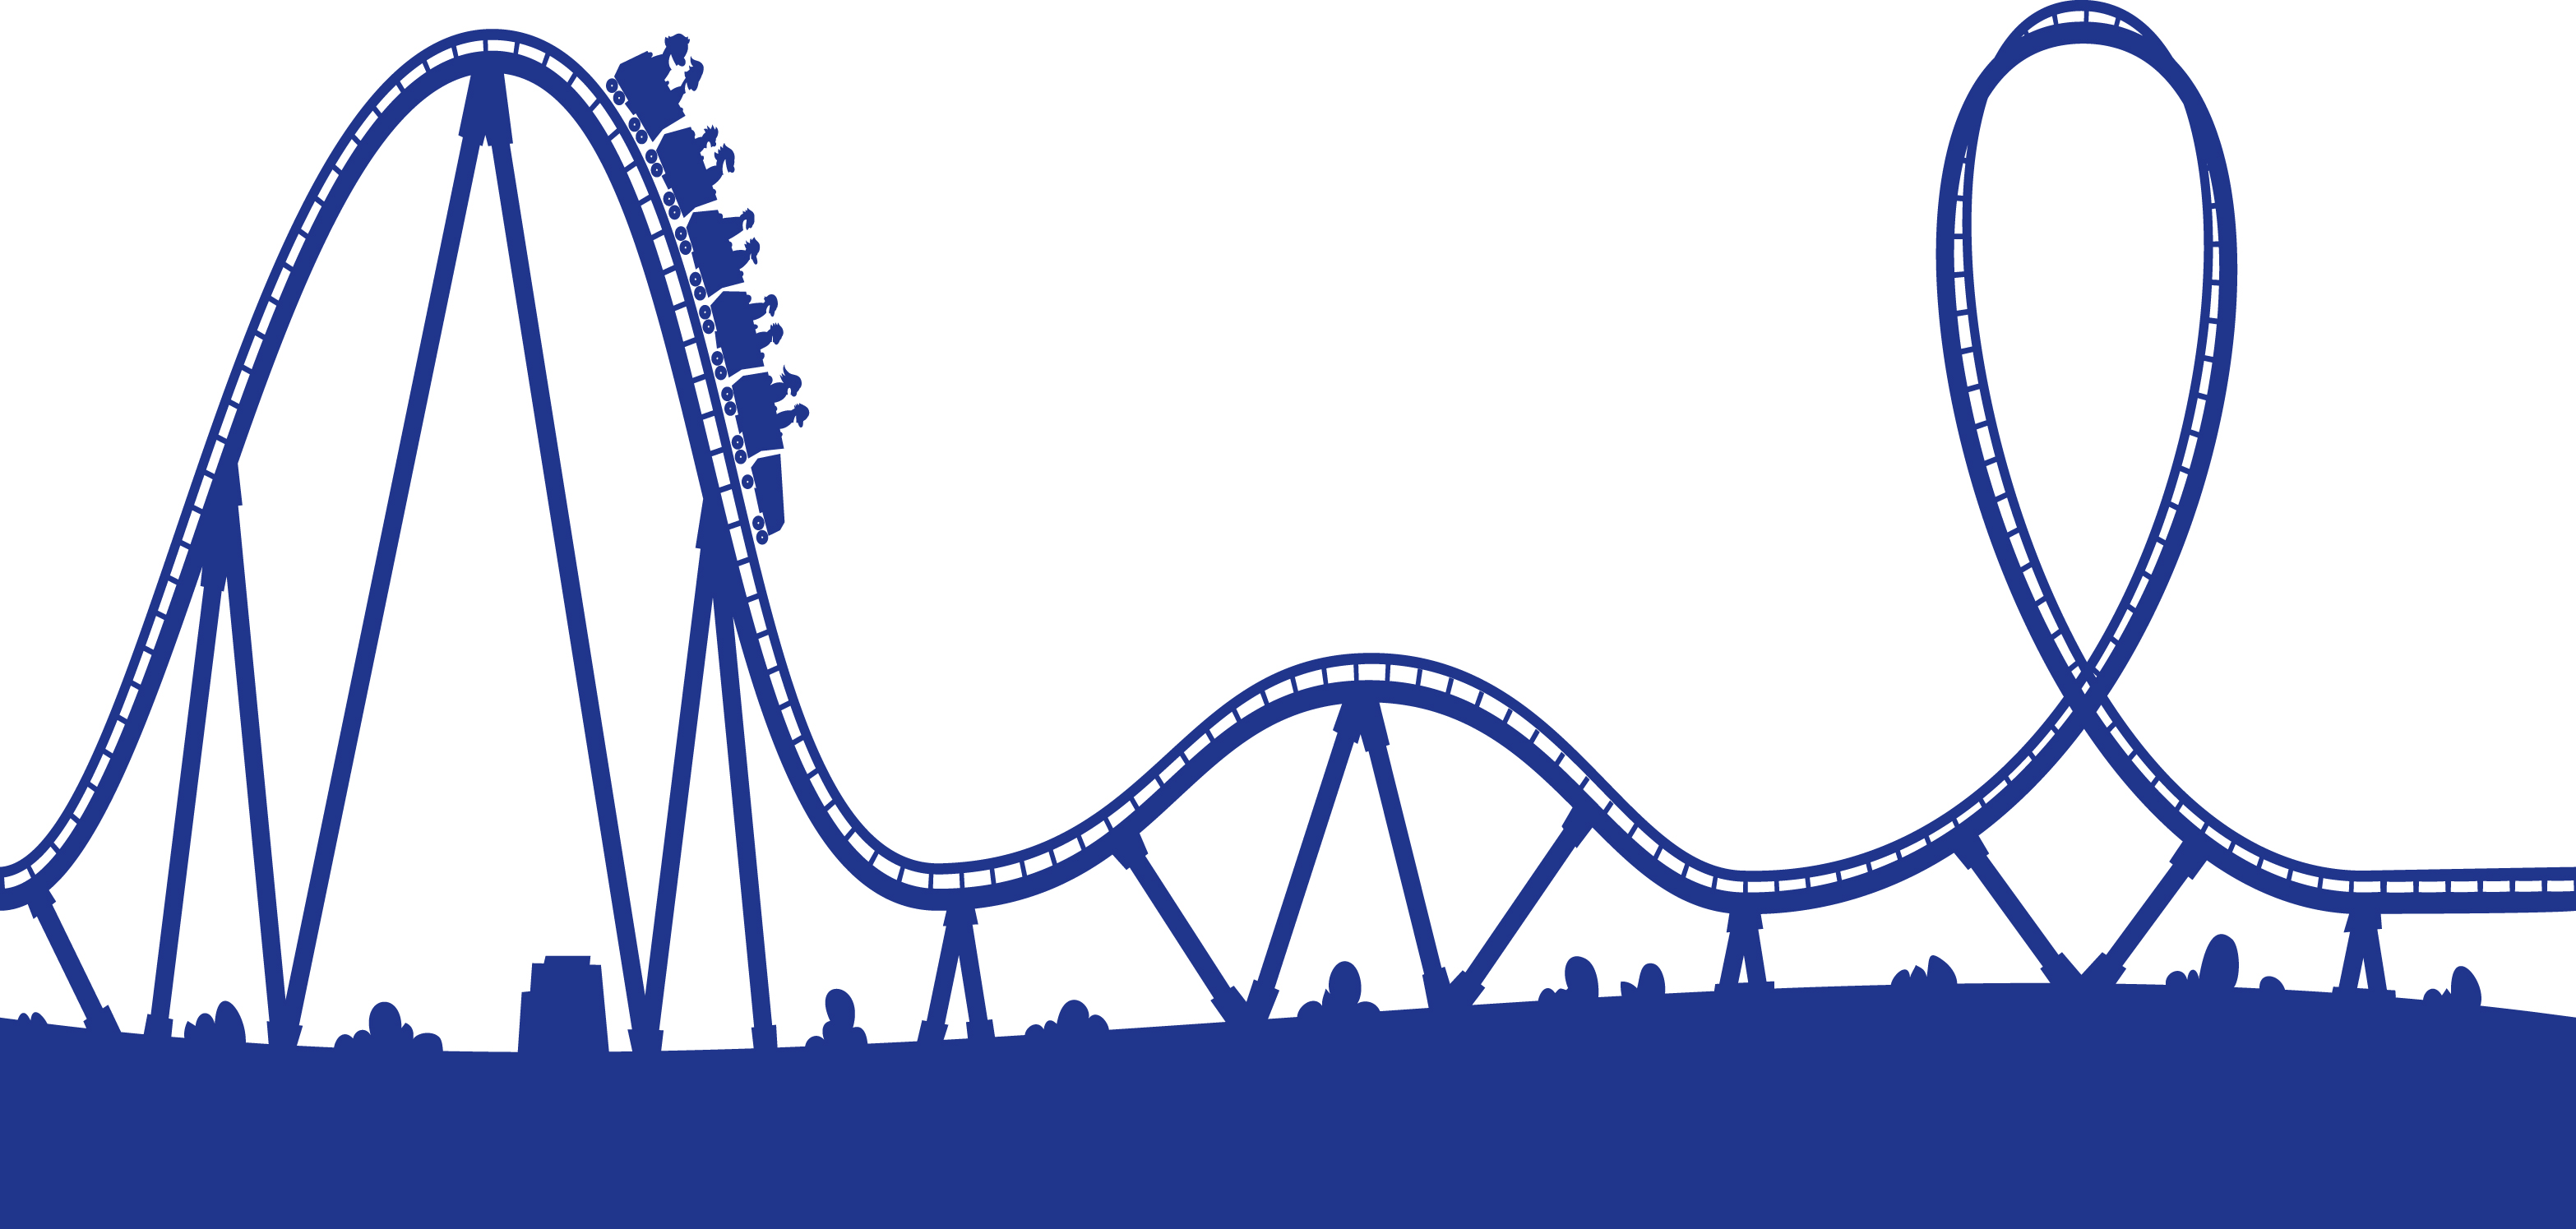 Roller Coaster Clipart - Clipart Kid